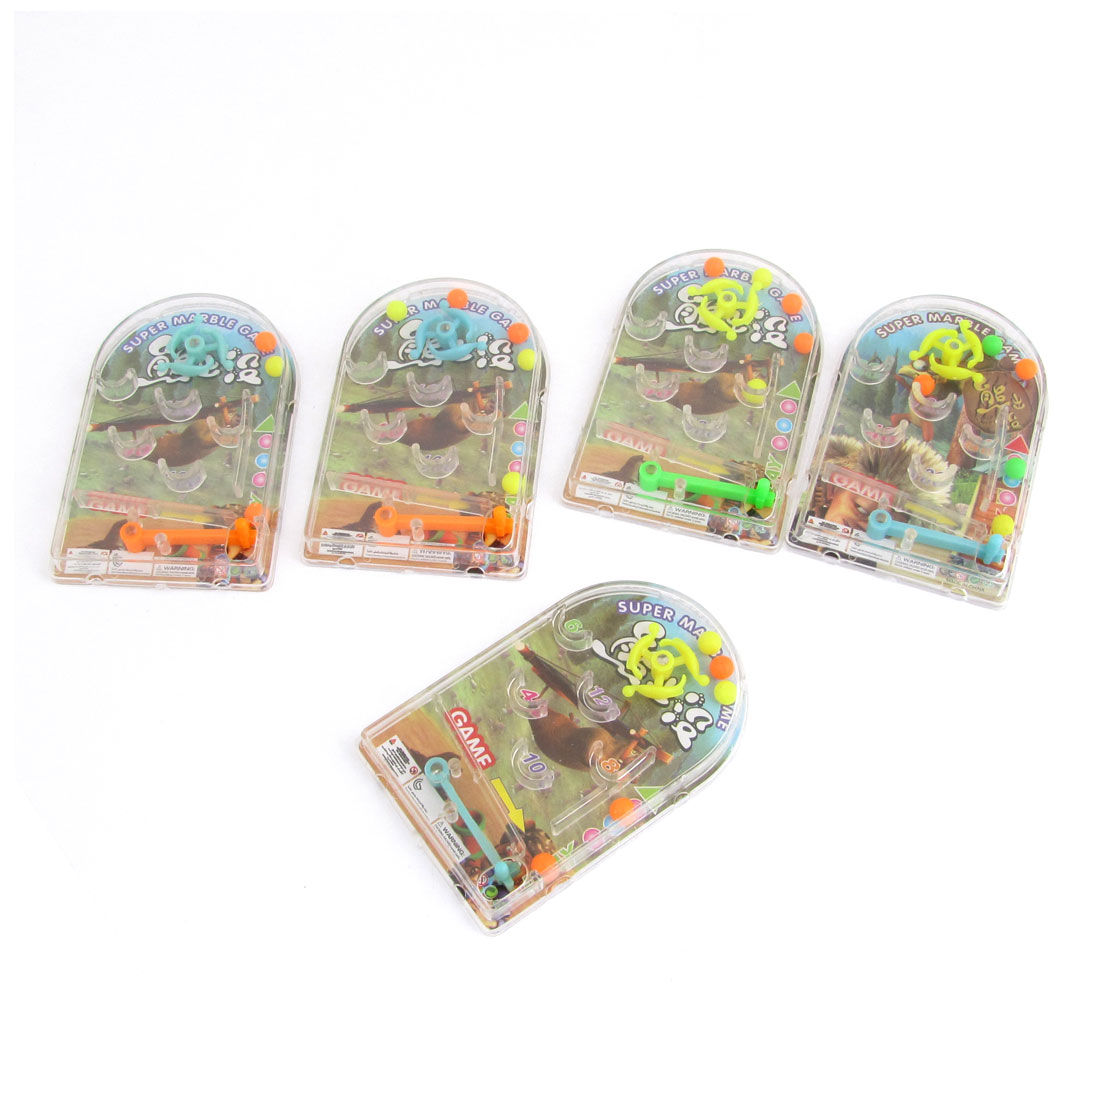 5 Pcs Spring Design Pinball Marble Game Intelligent Toy for Children